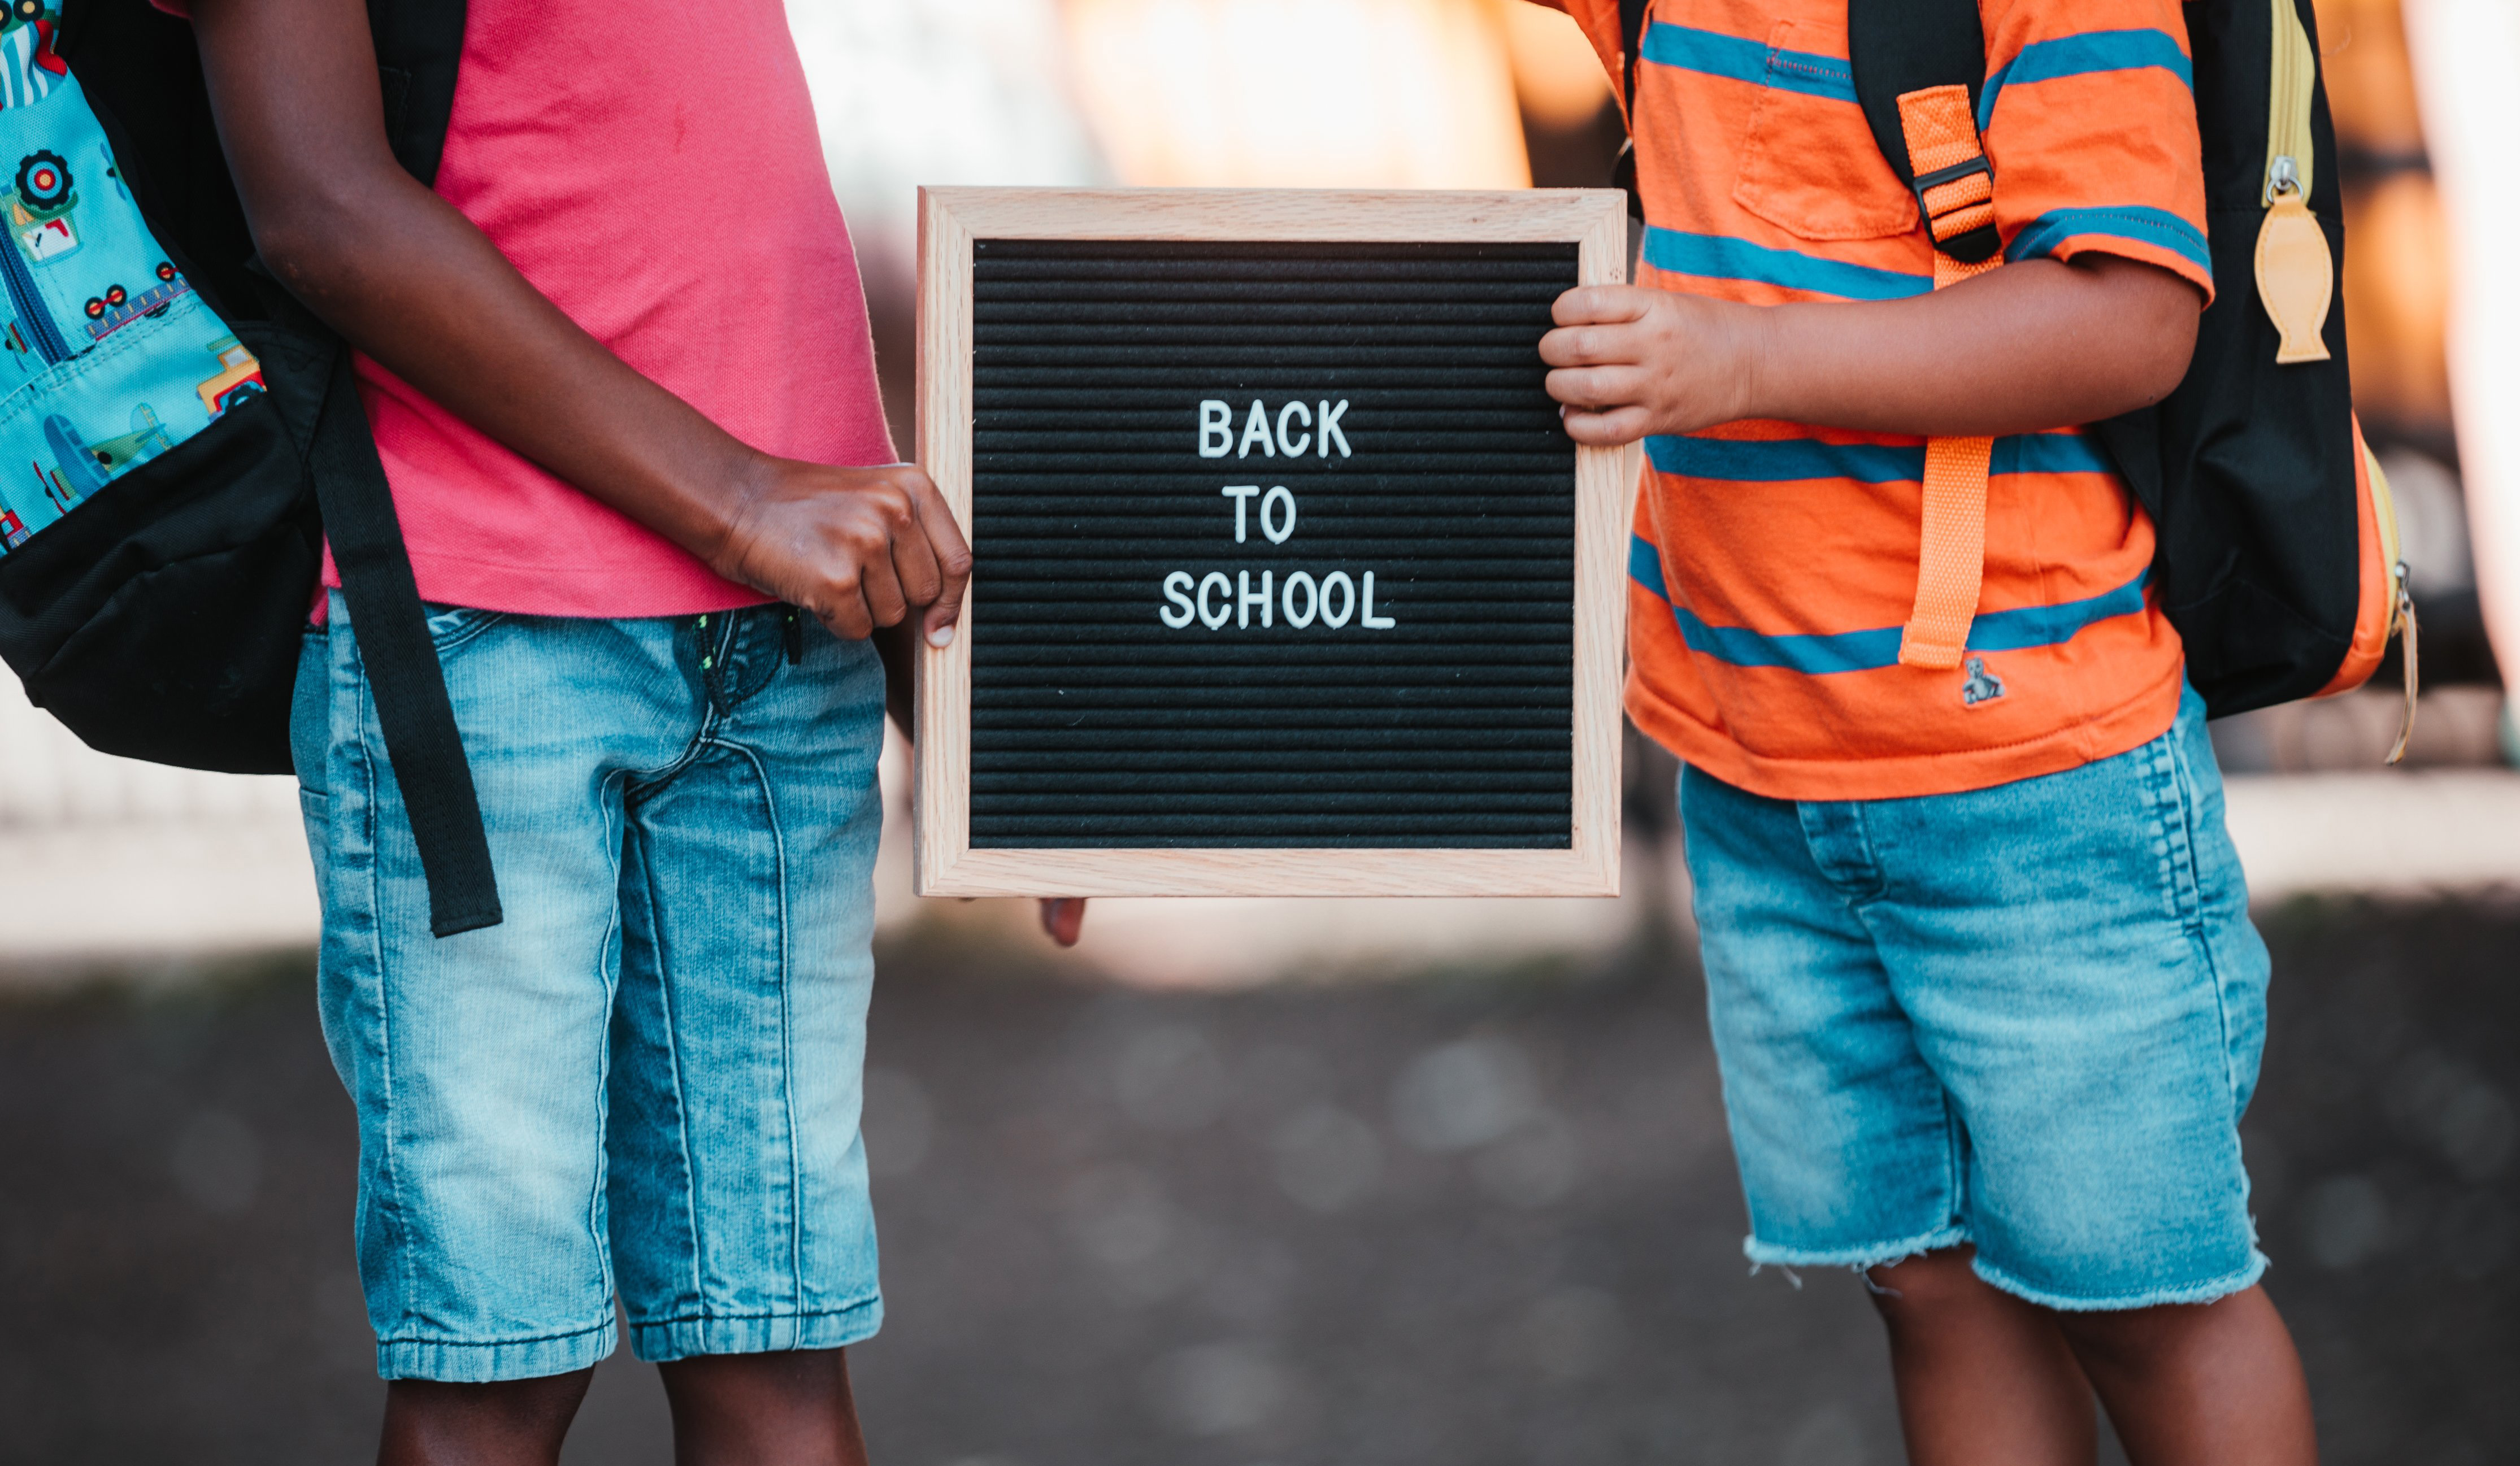 cropped_back-to-school-pegboard